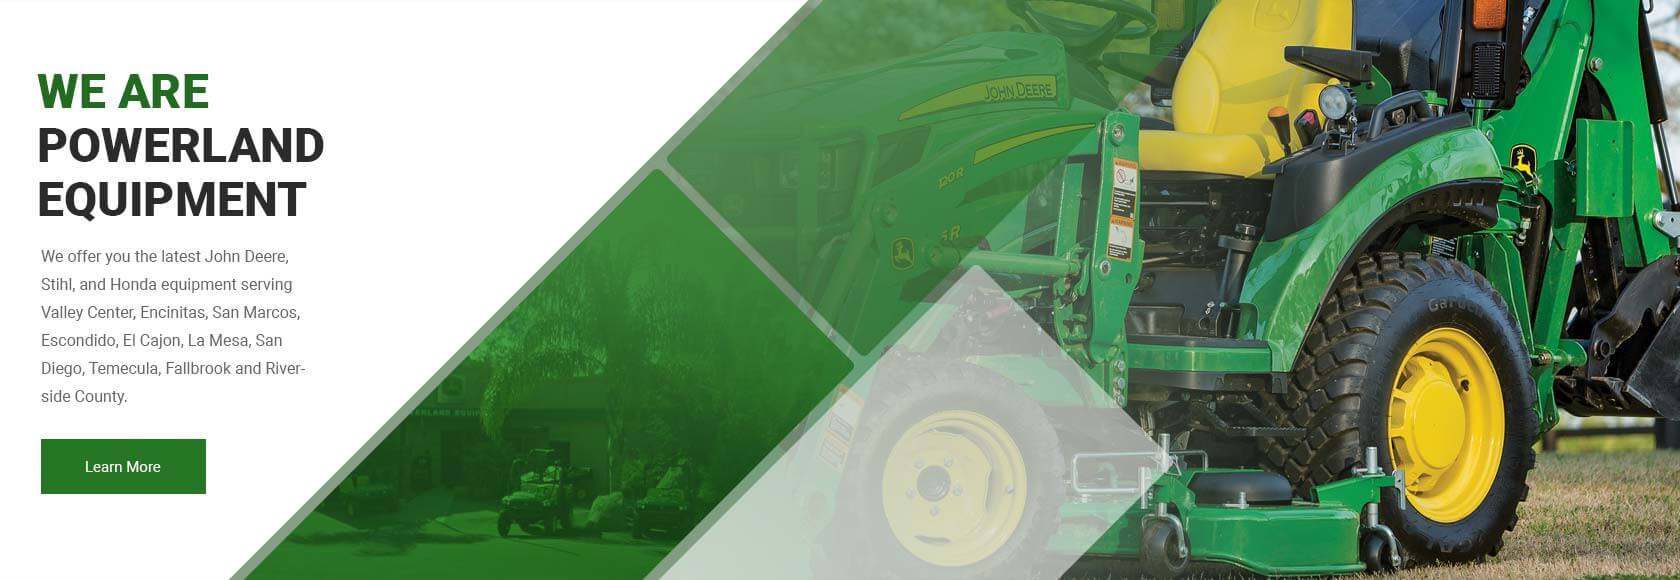 We offer you the latest John Deere, Stihl, and Honda equipment serving California Valley Center, Encinita, San Marcos, Escondido, El Cajon, La Mesa, San Diego, Temecula, Fallbrook and Riverside County.